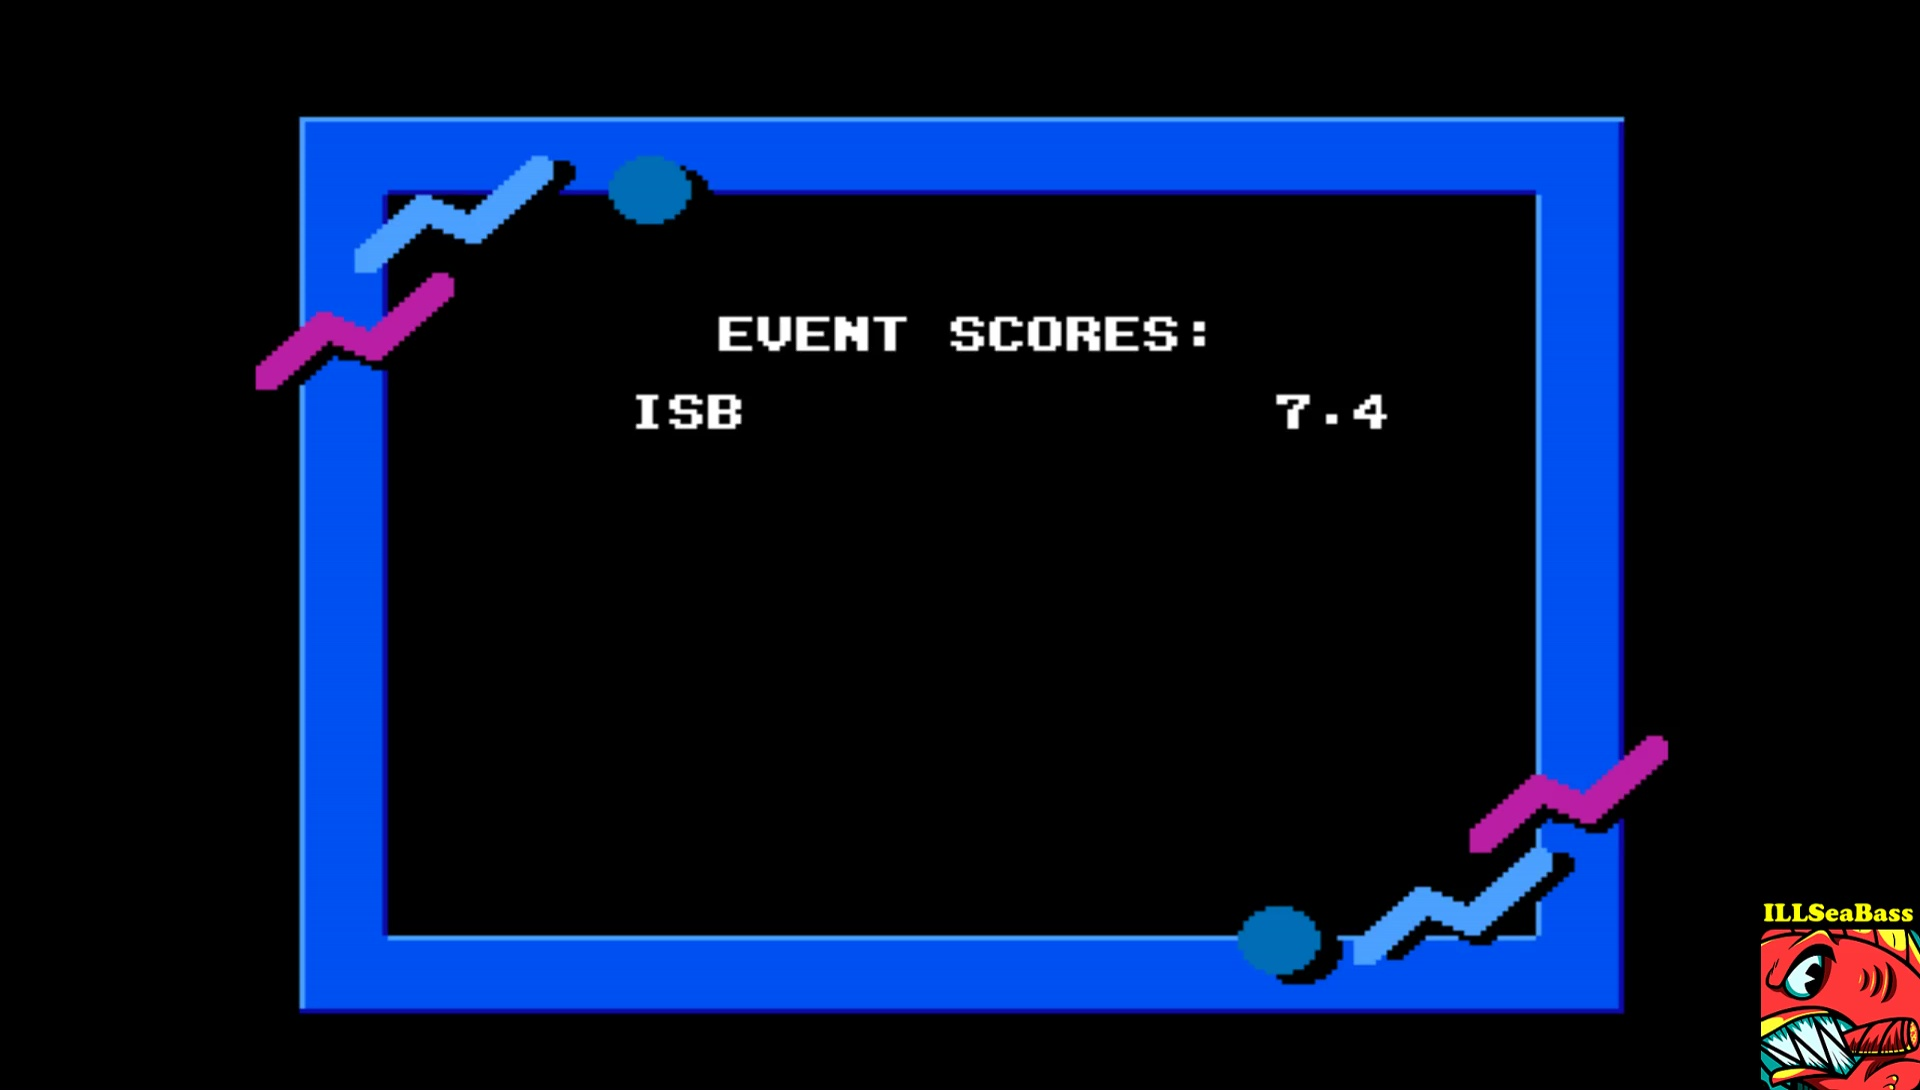 ILLSeaBass: California Games: Surfing (NES/Famicom Emulated) 74 points on 2017-03-27 21:22:58